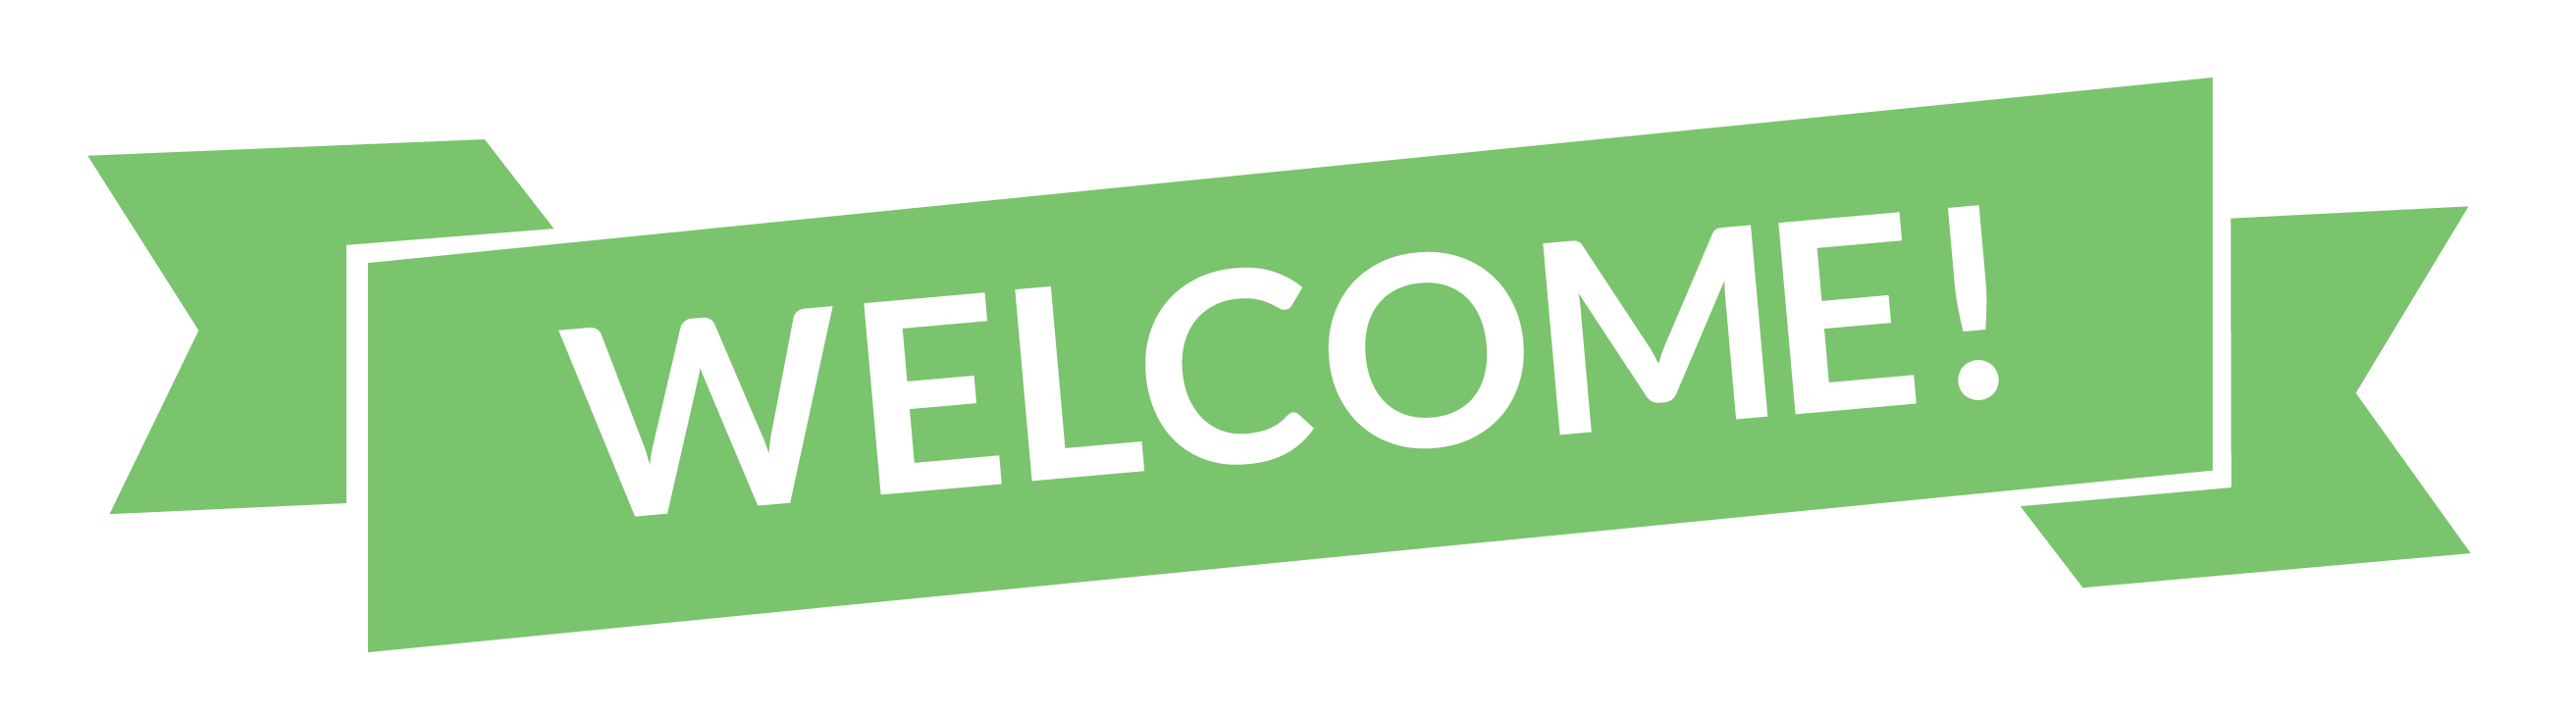 Welcome-In-Green-Background